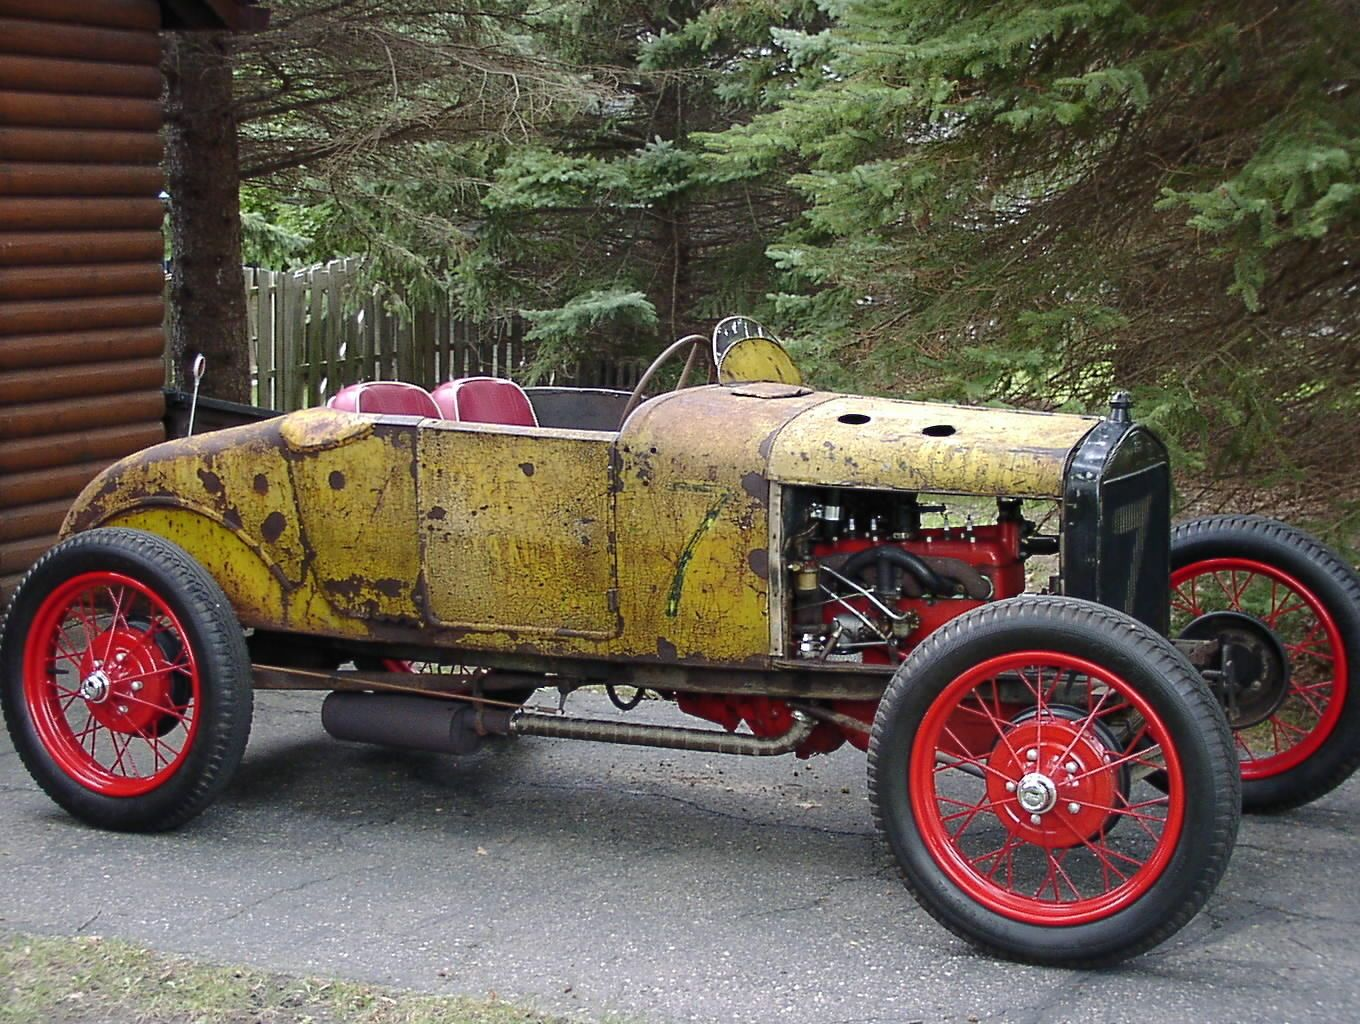 1927 Ford model T dirt track racer. & Model A Speedster u2026 | Cars and motorcycles | Pinterest | Models ... markmcfarlin.com